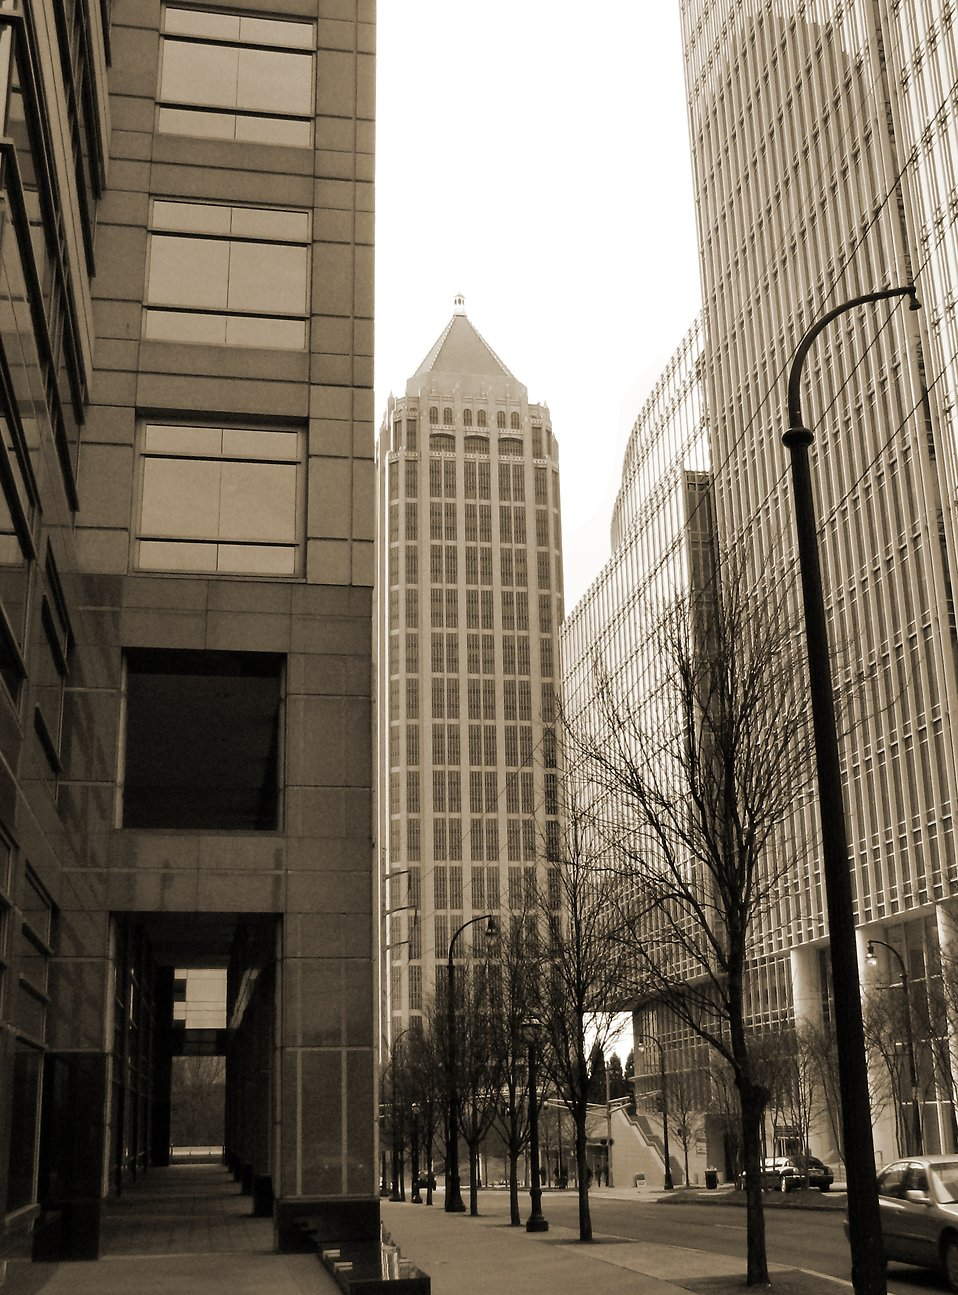 B&W Atlanta downtown buildings : Free Stock Photo